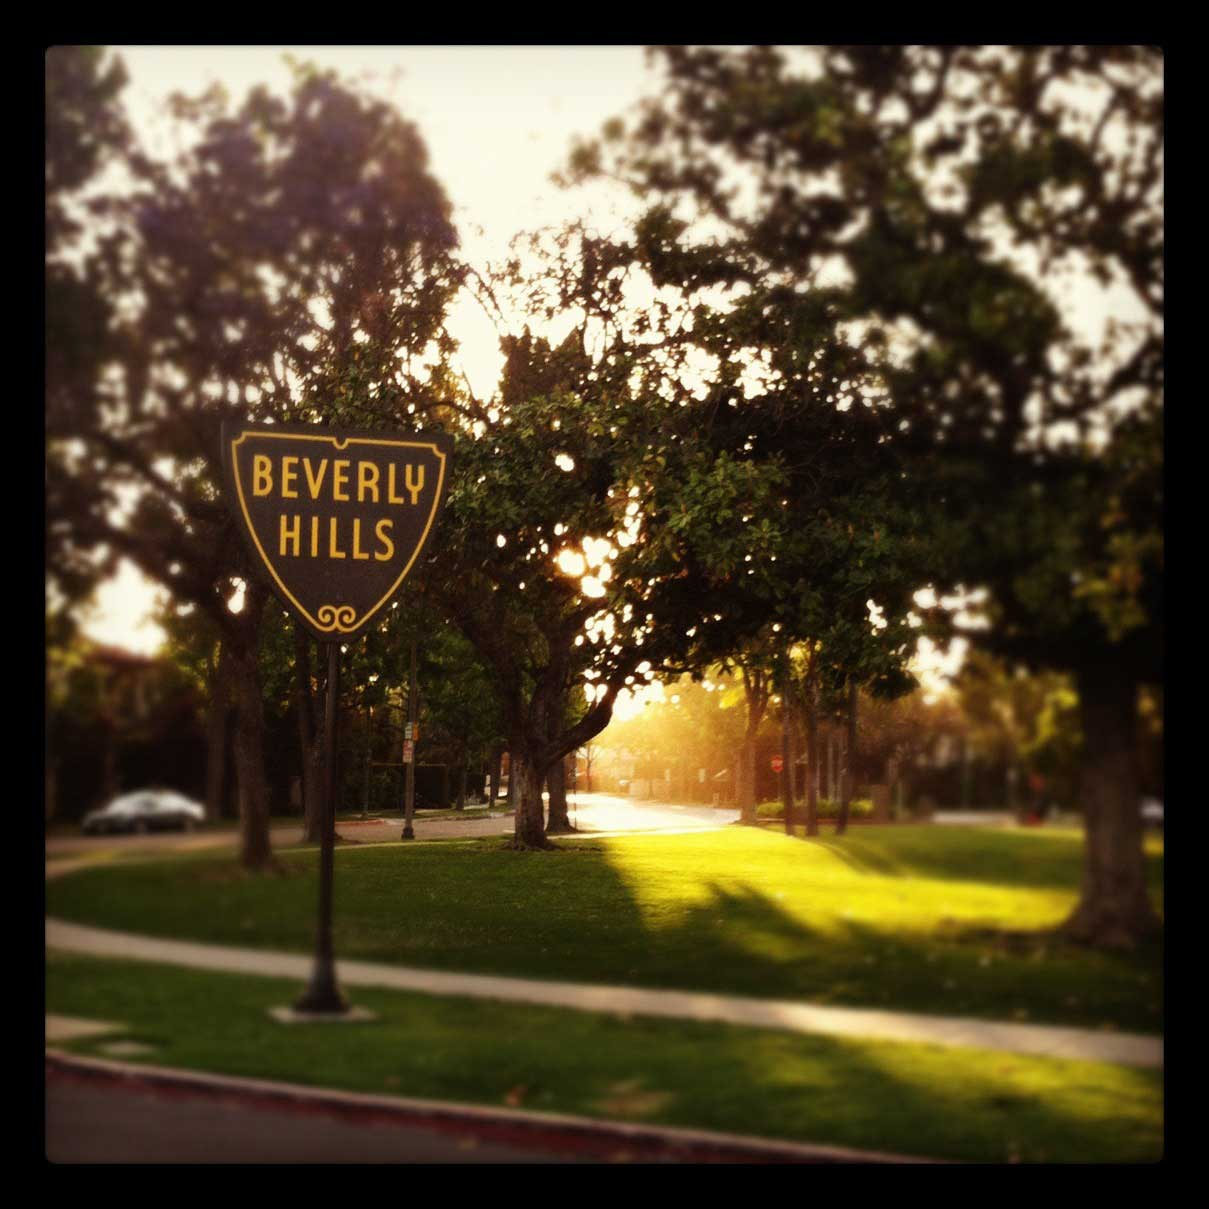 WildCollective - Beverly Hills